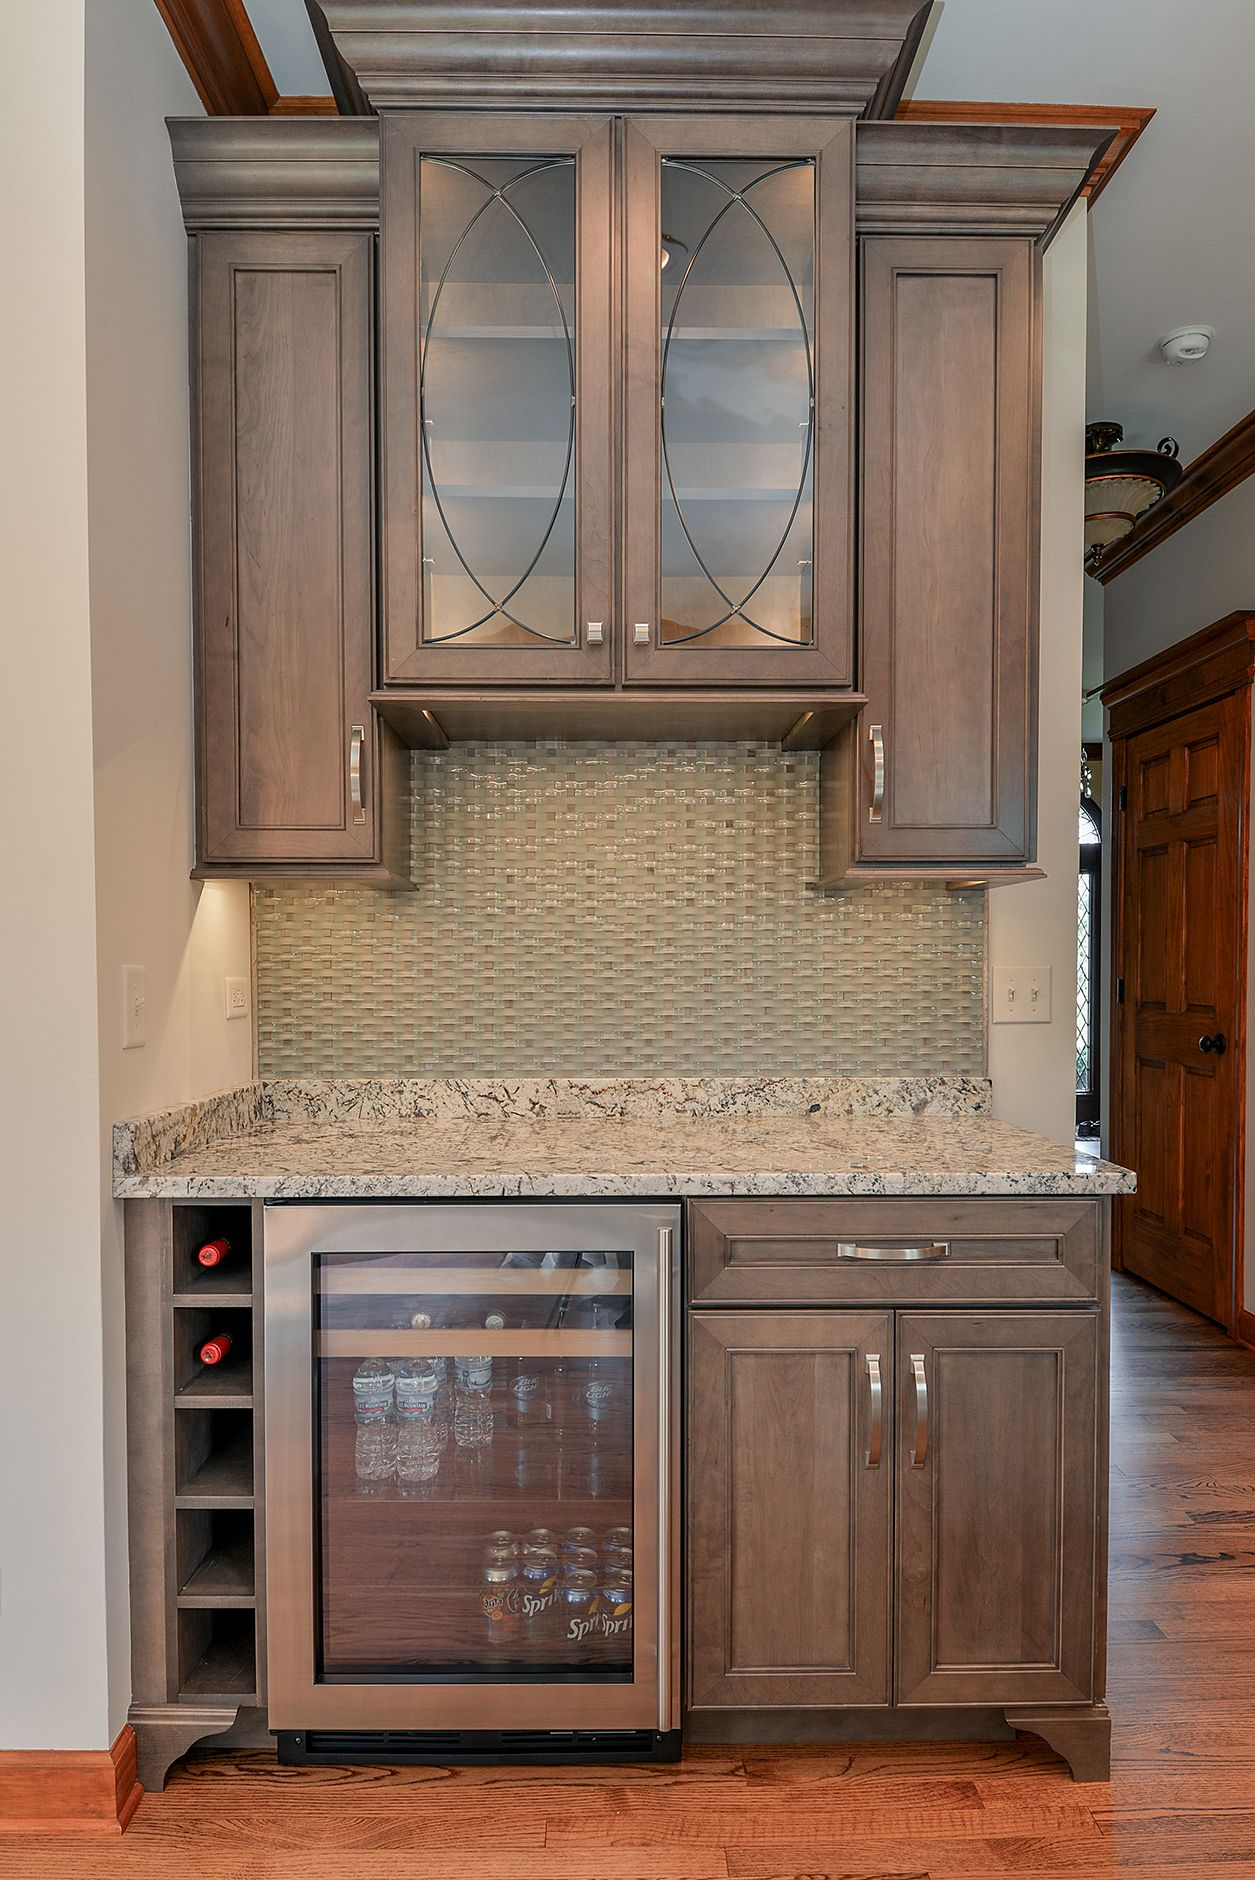 Wellborn Kitchen Cabinets White Wood Table Refreshment Center Cabinet Inc Premier Series Sonoma Door Style On Maple Stained With Drift Sebringservices